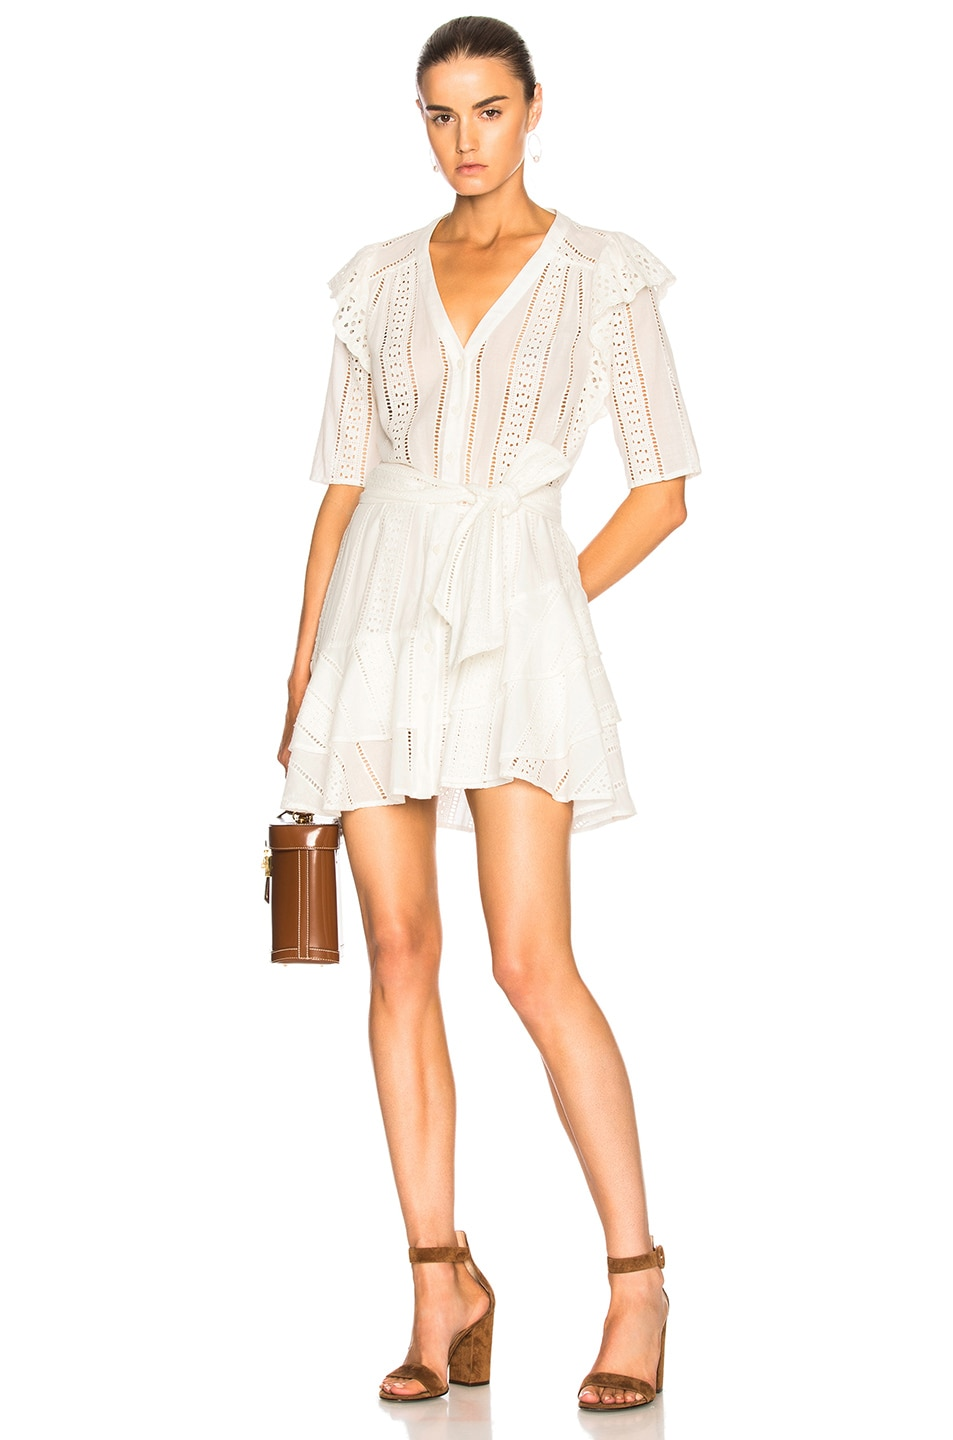 VERONICA BEARD SIMA DRESS IN WHITE